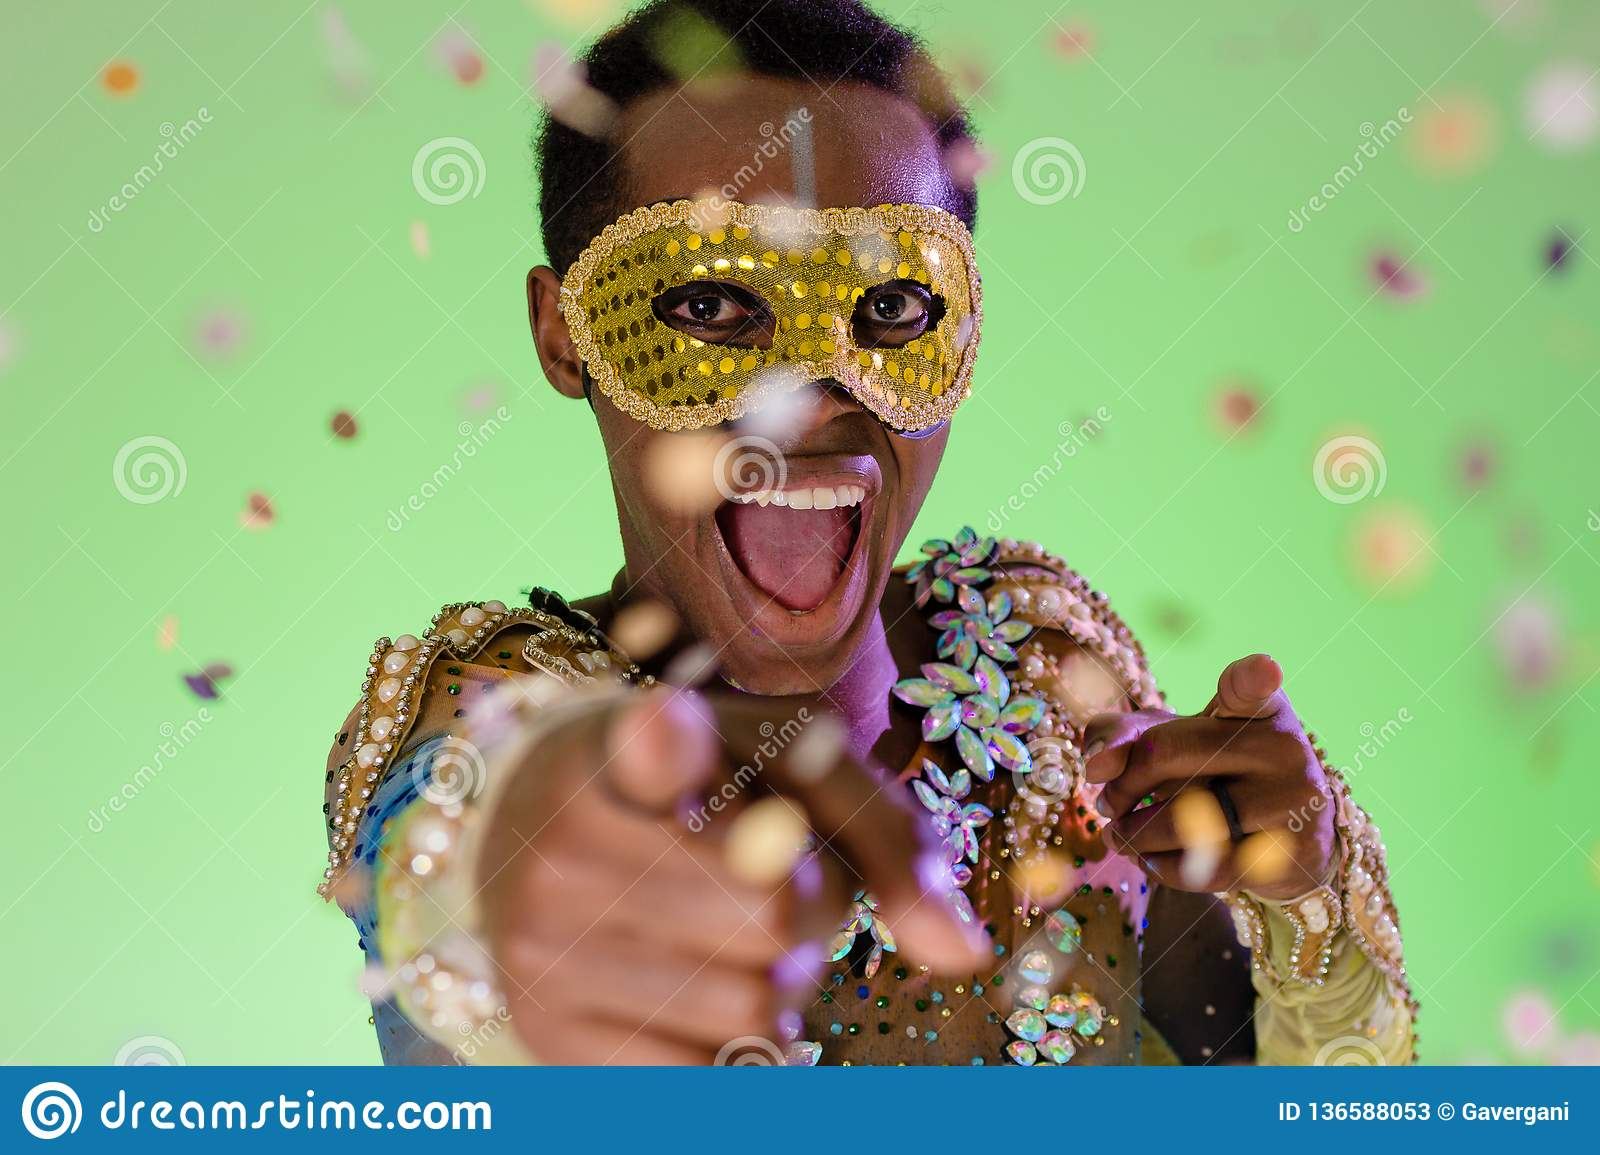 Carnaval Brazil. Throwing confetti. Colorful background. Carnival concept, funny and party. Portrait of brazilian guy dressed up